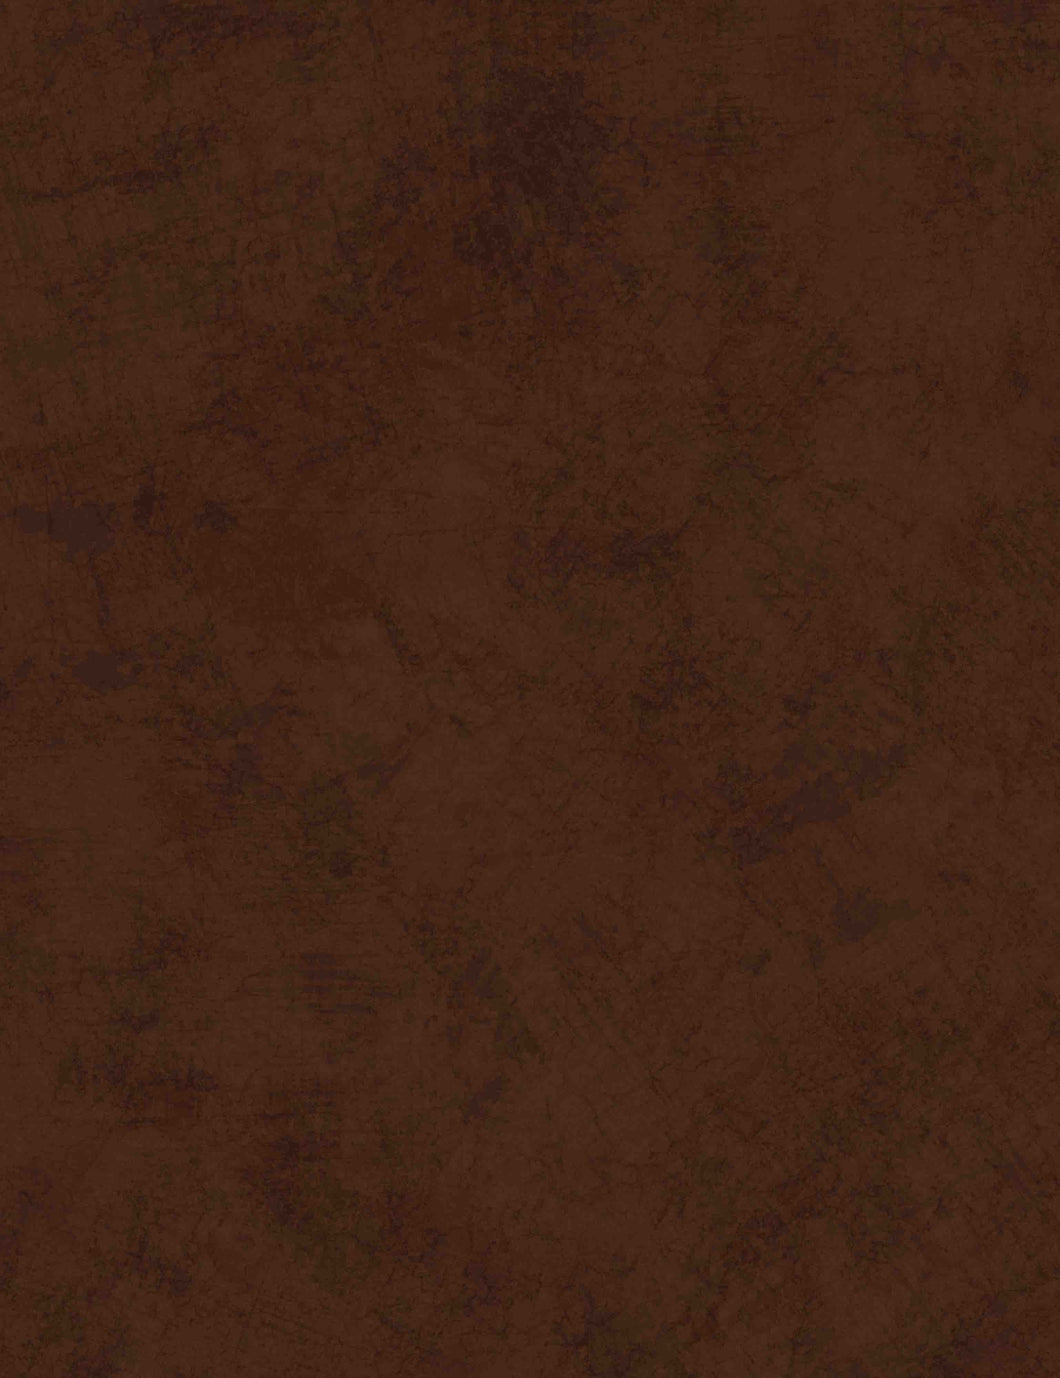 Deep Chocolate Abstract Printed Old Master Backdrop For Studio Photo - Shop Backdrop